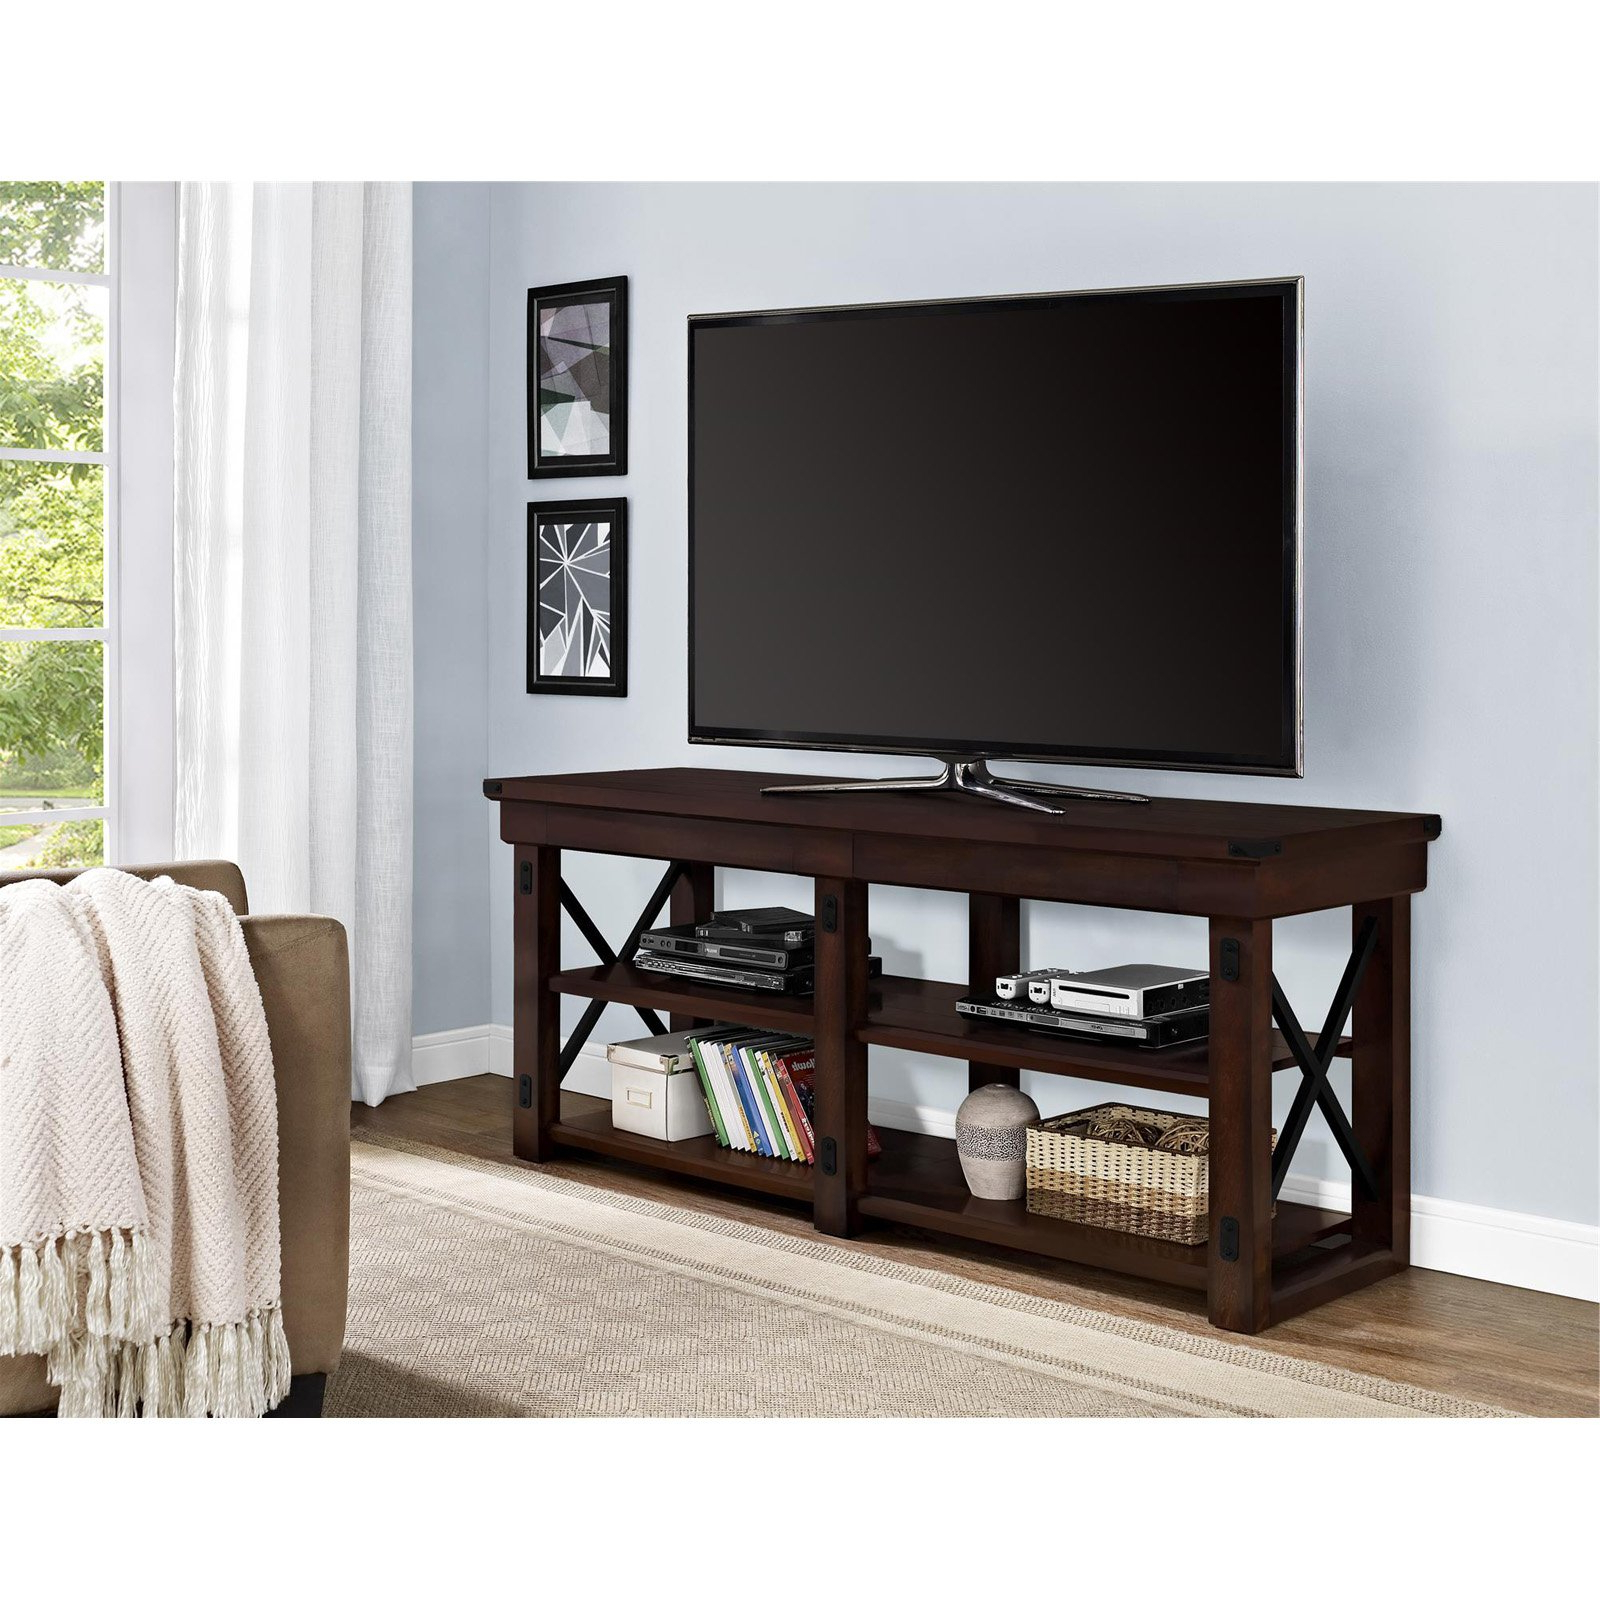 """Ameriwood Home Wildwood Tv Stand For Tvs Up To 65 Intended For Current Totally Tv Stands For Tvs Up To 65"""" (View 12 of 25)"""